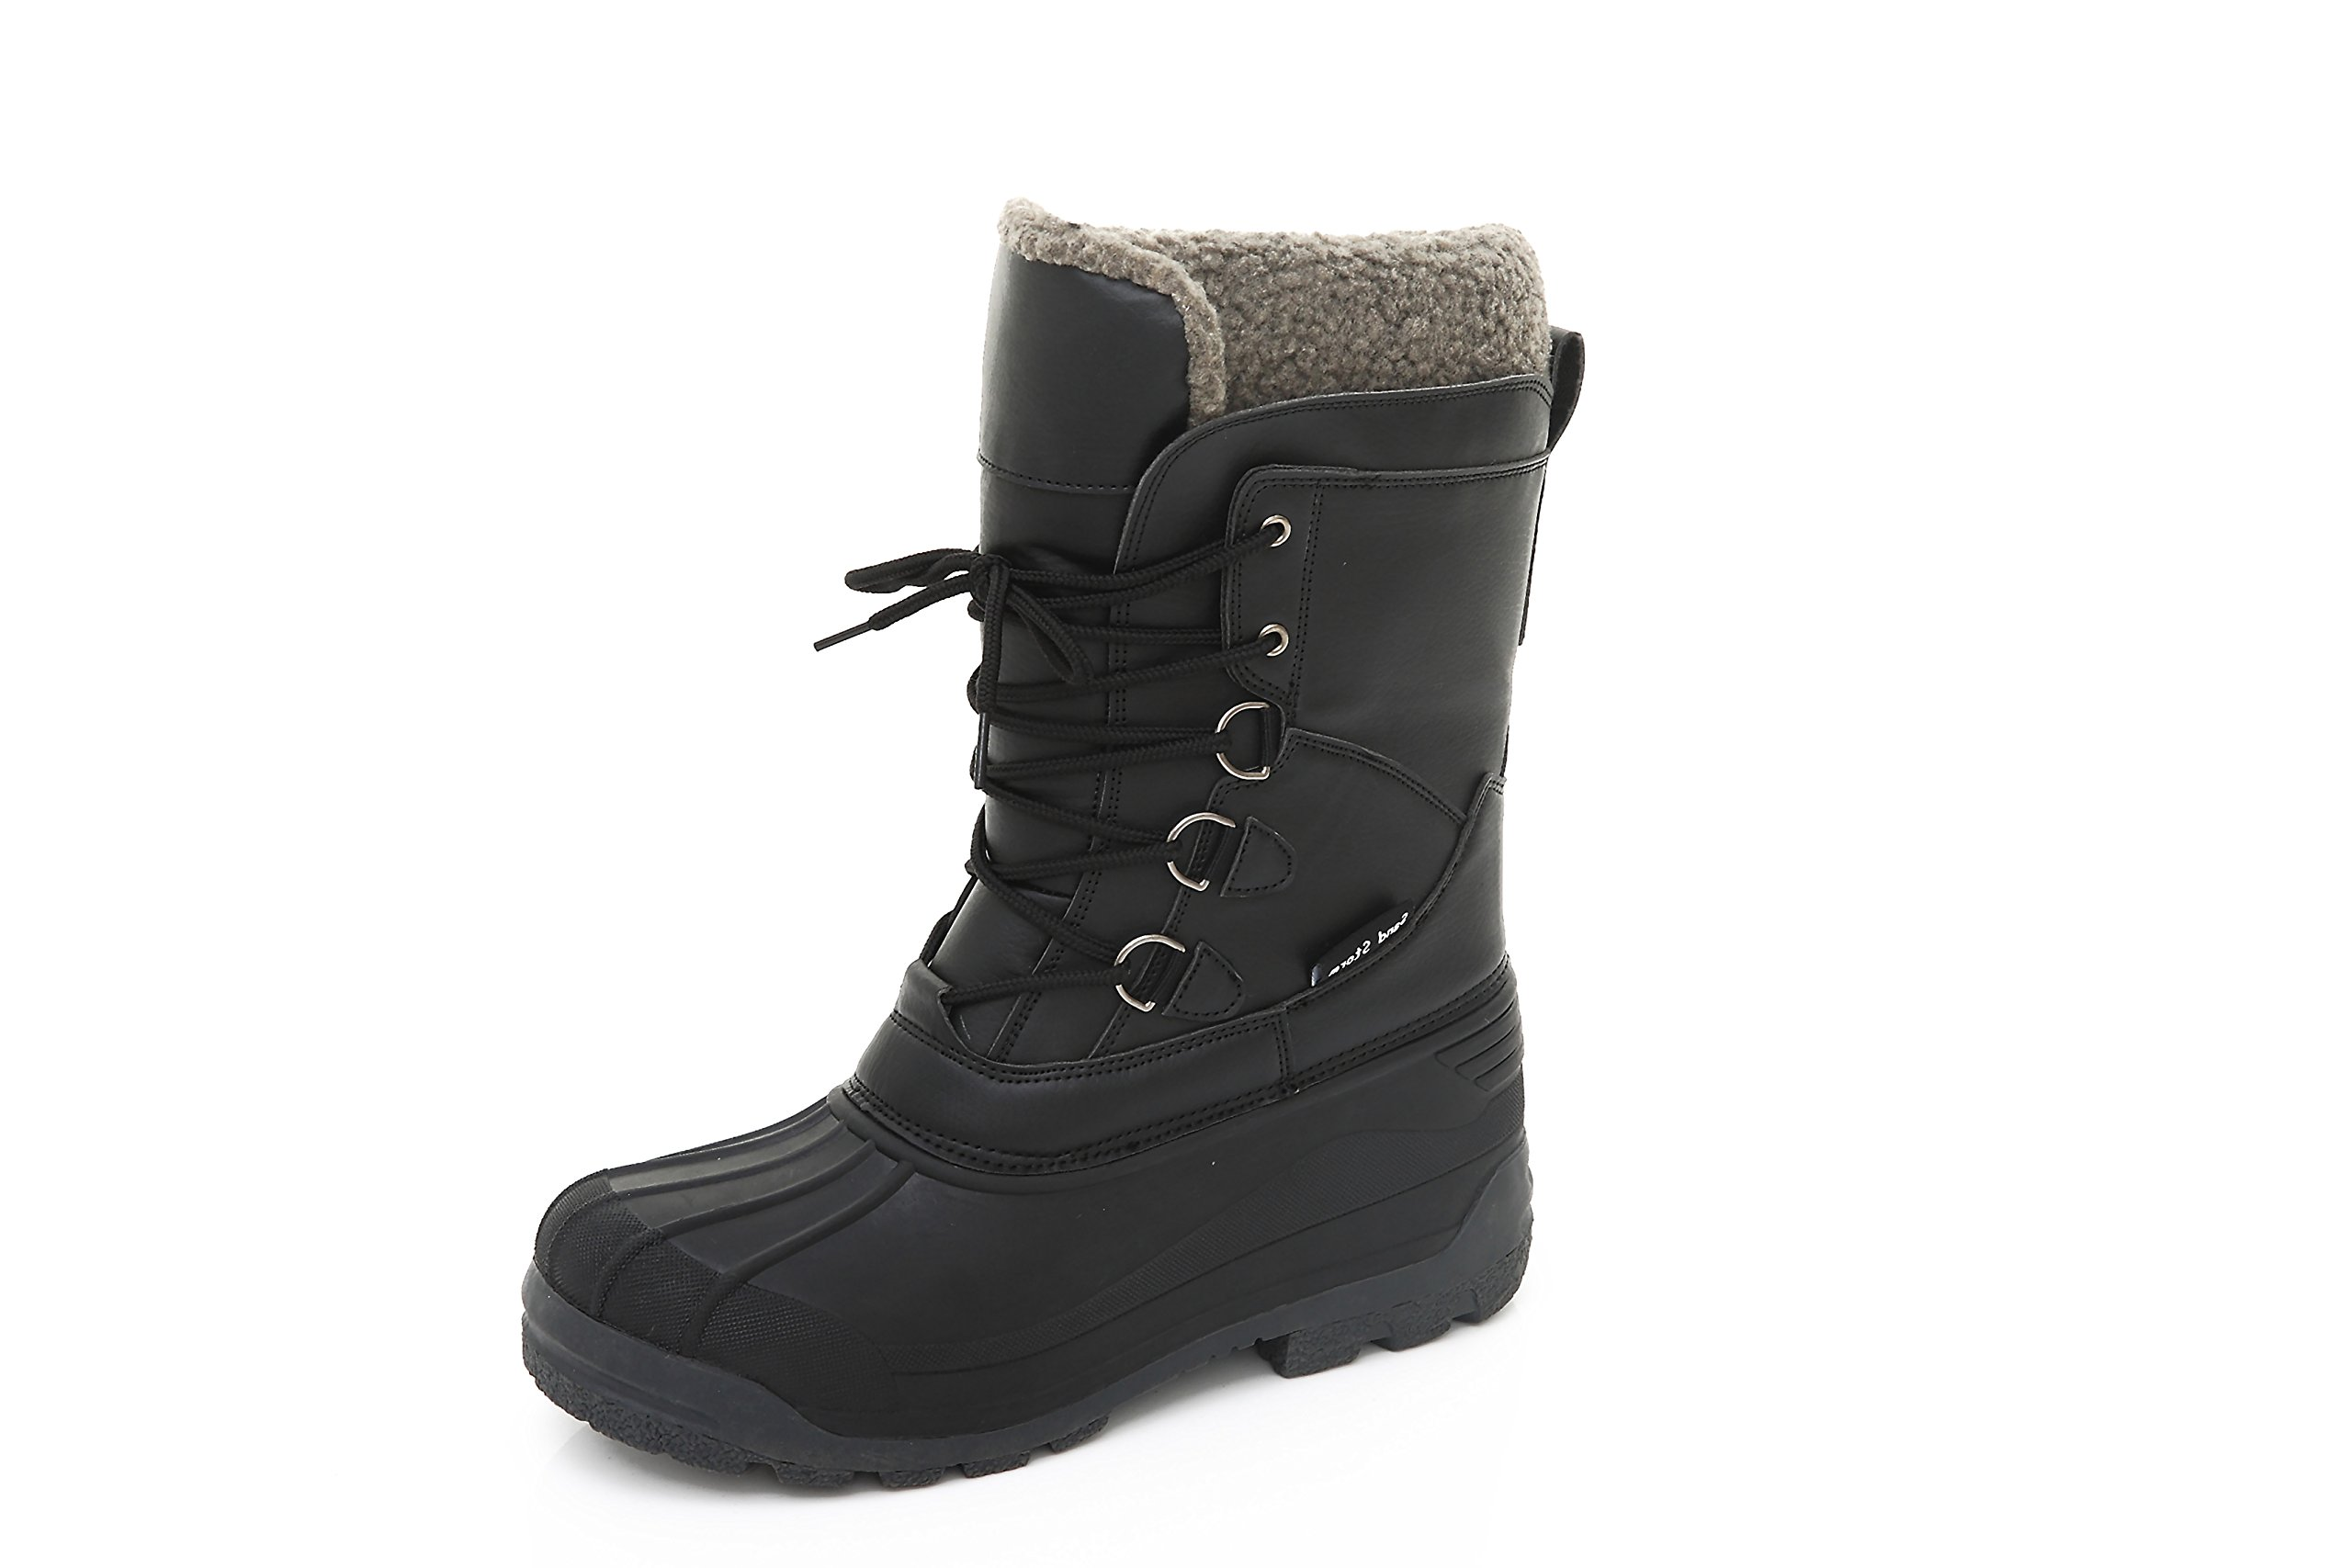 Womens Insulated Winter Snow Boots - Lace-Up Closure Comfortable Weatherproof Warm Ladies